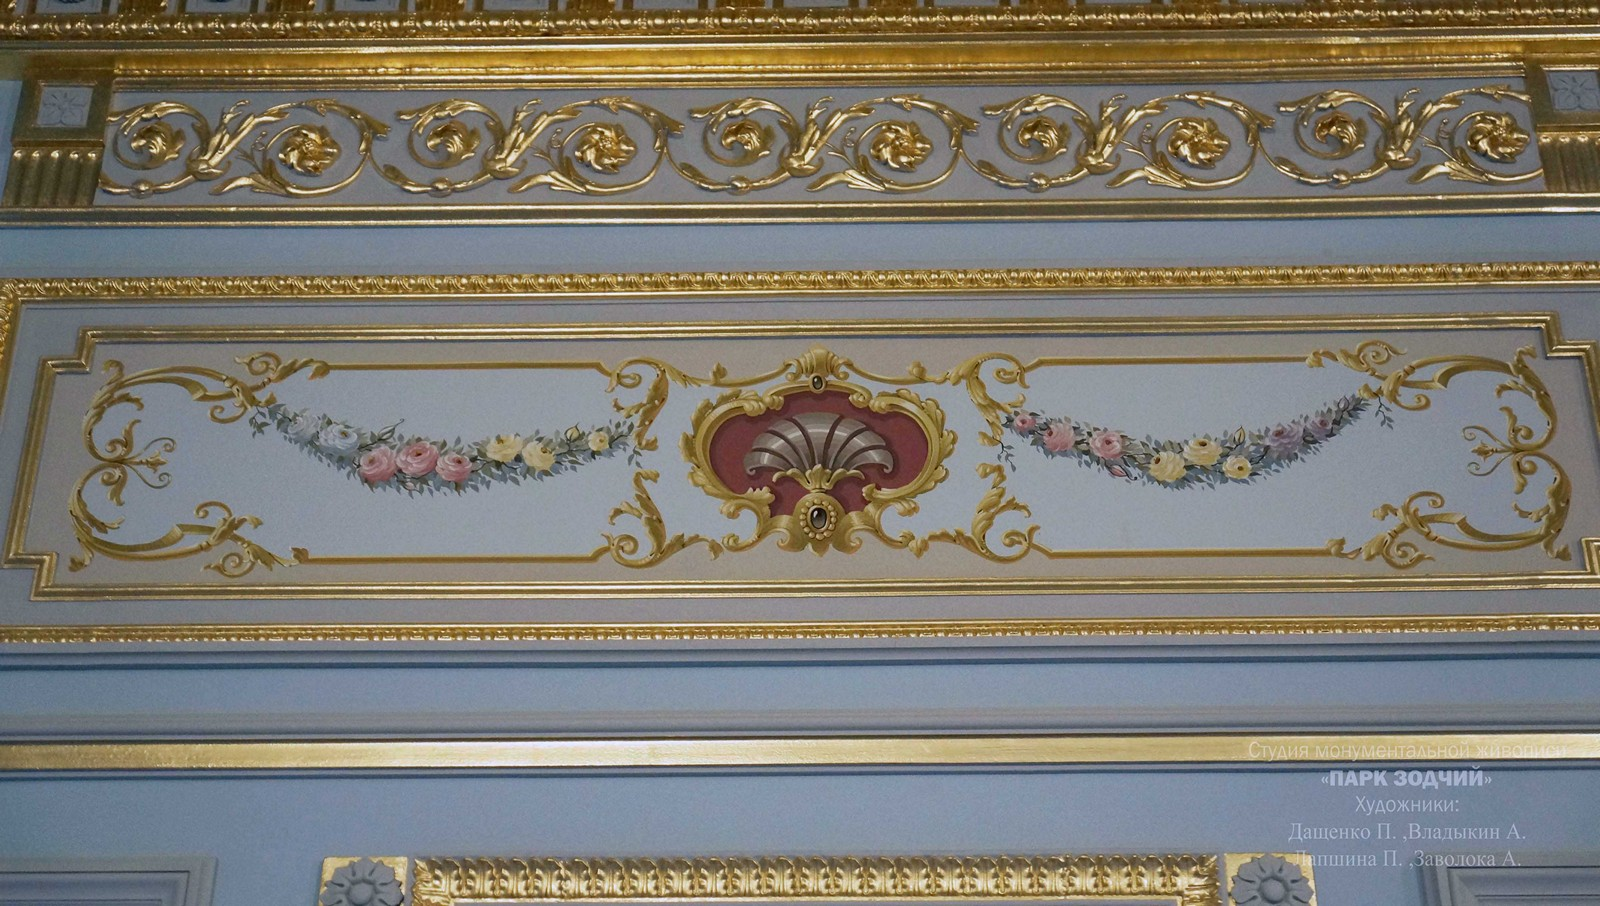 Polychrome frieze in the living room with gilded plaster moldings